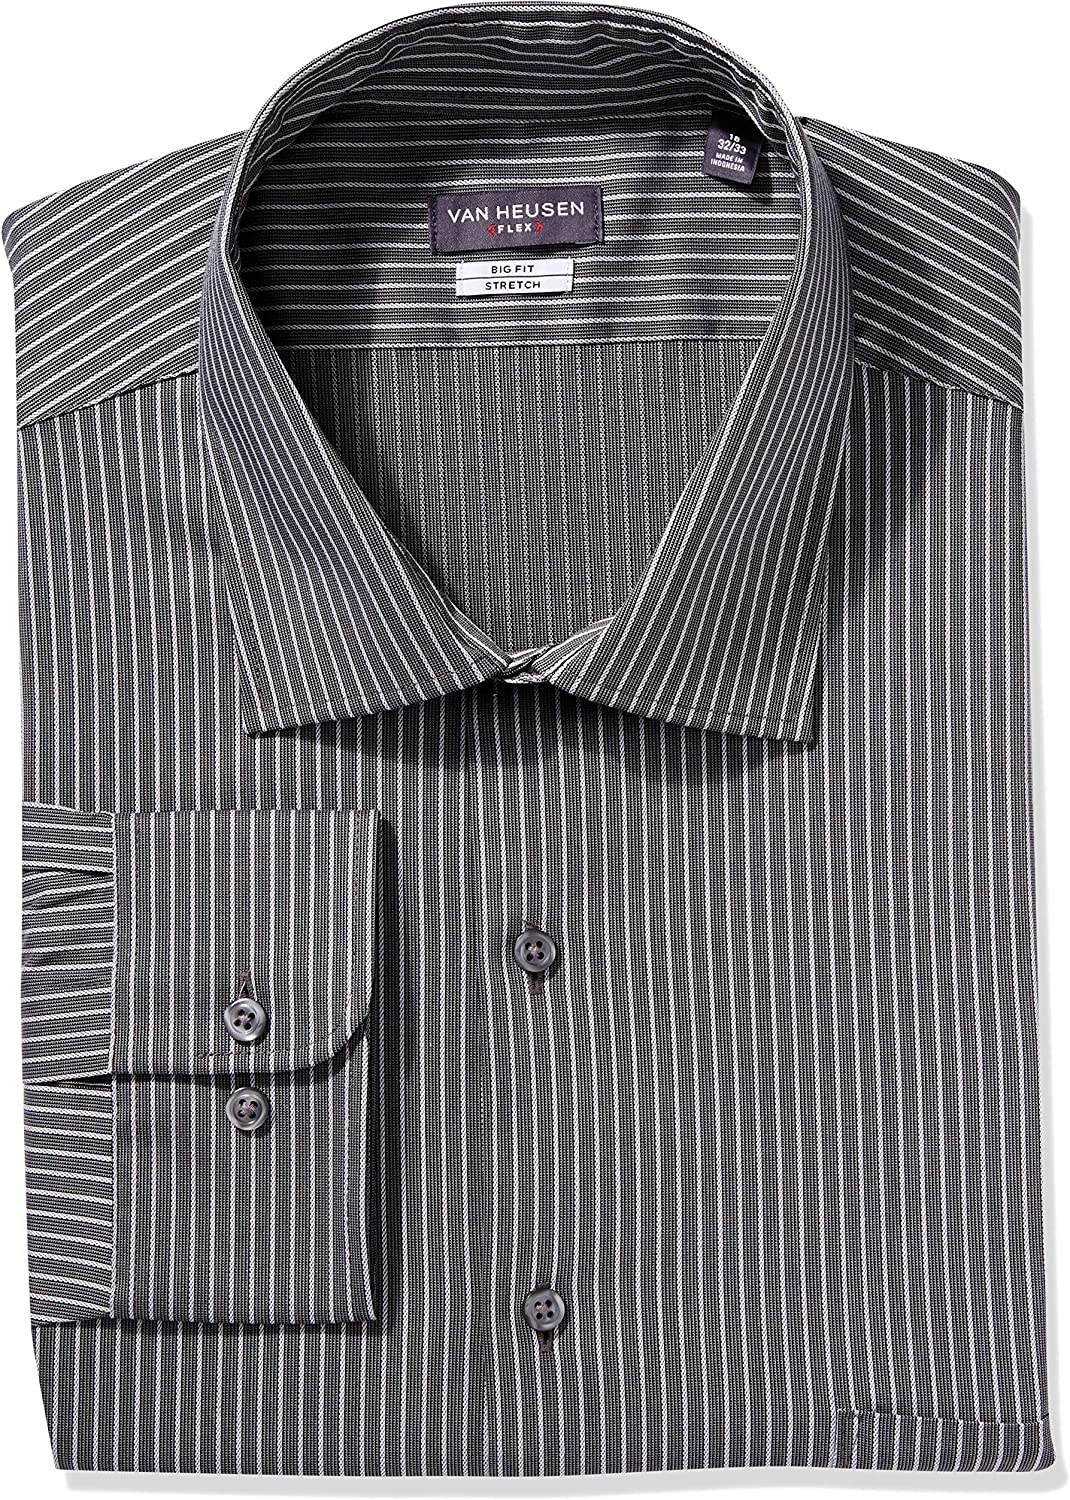 Van Heusen Men's Big Fit Dress Shirts Flex Collar Stretch Stripe: Clothing